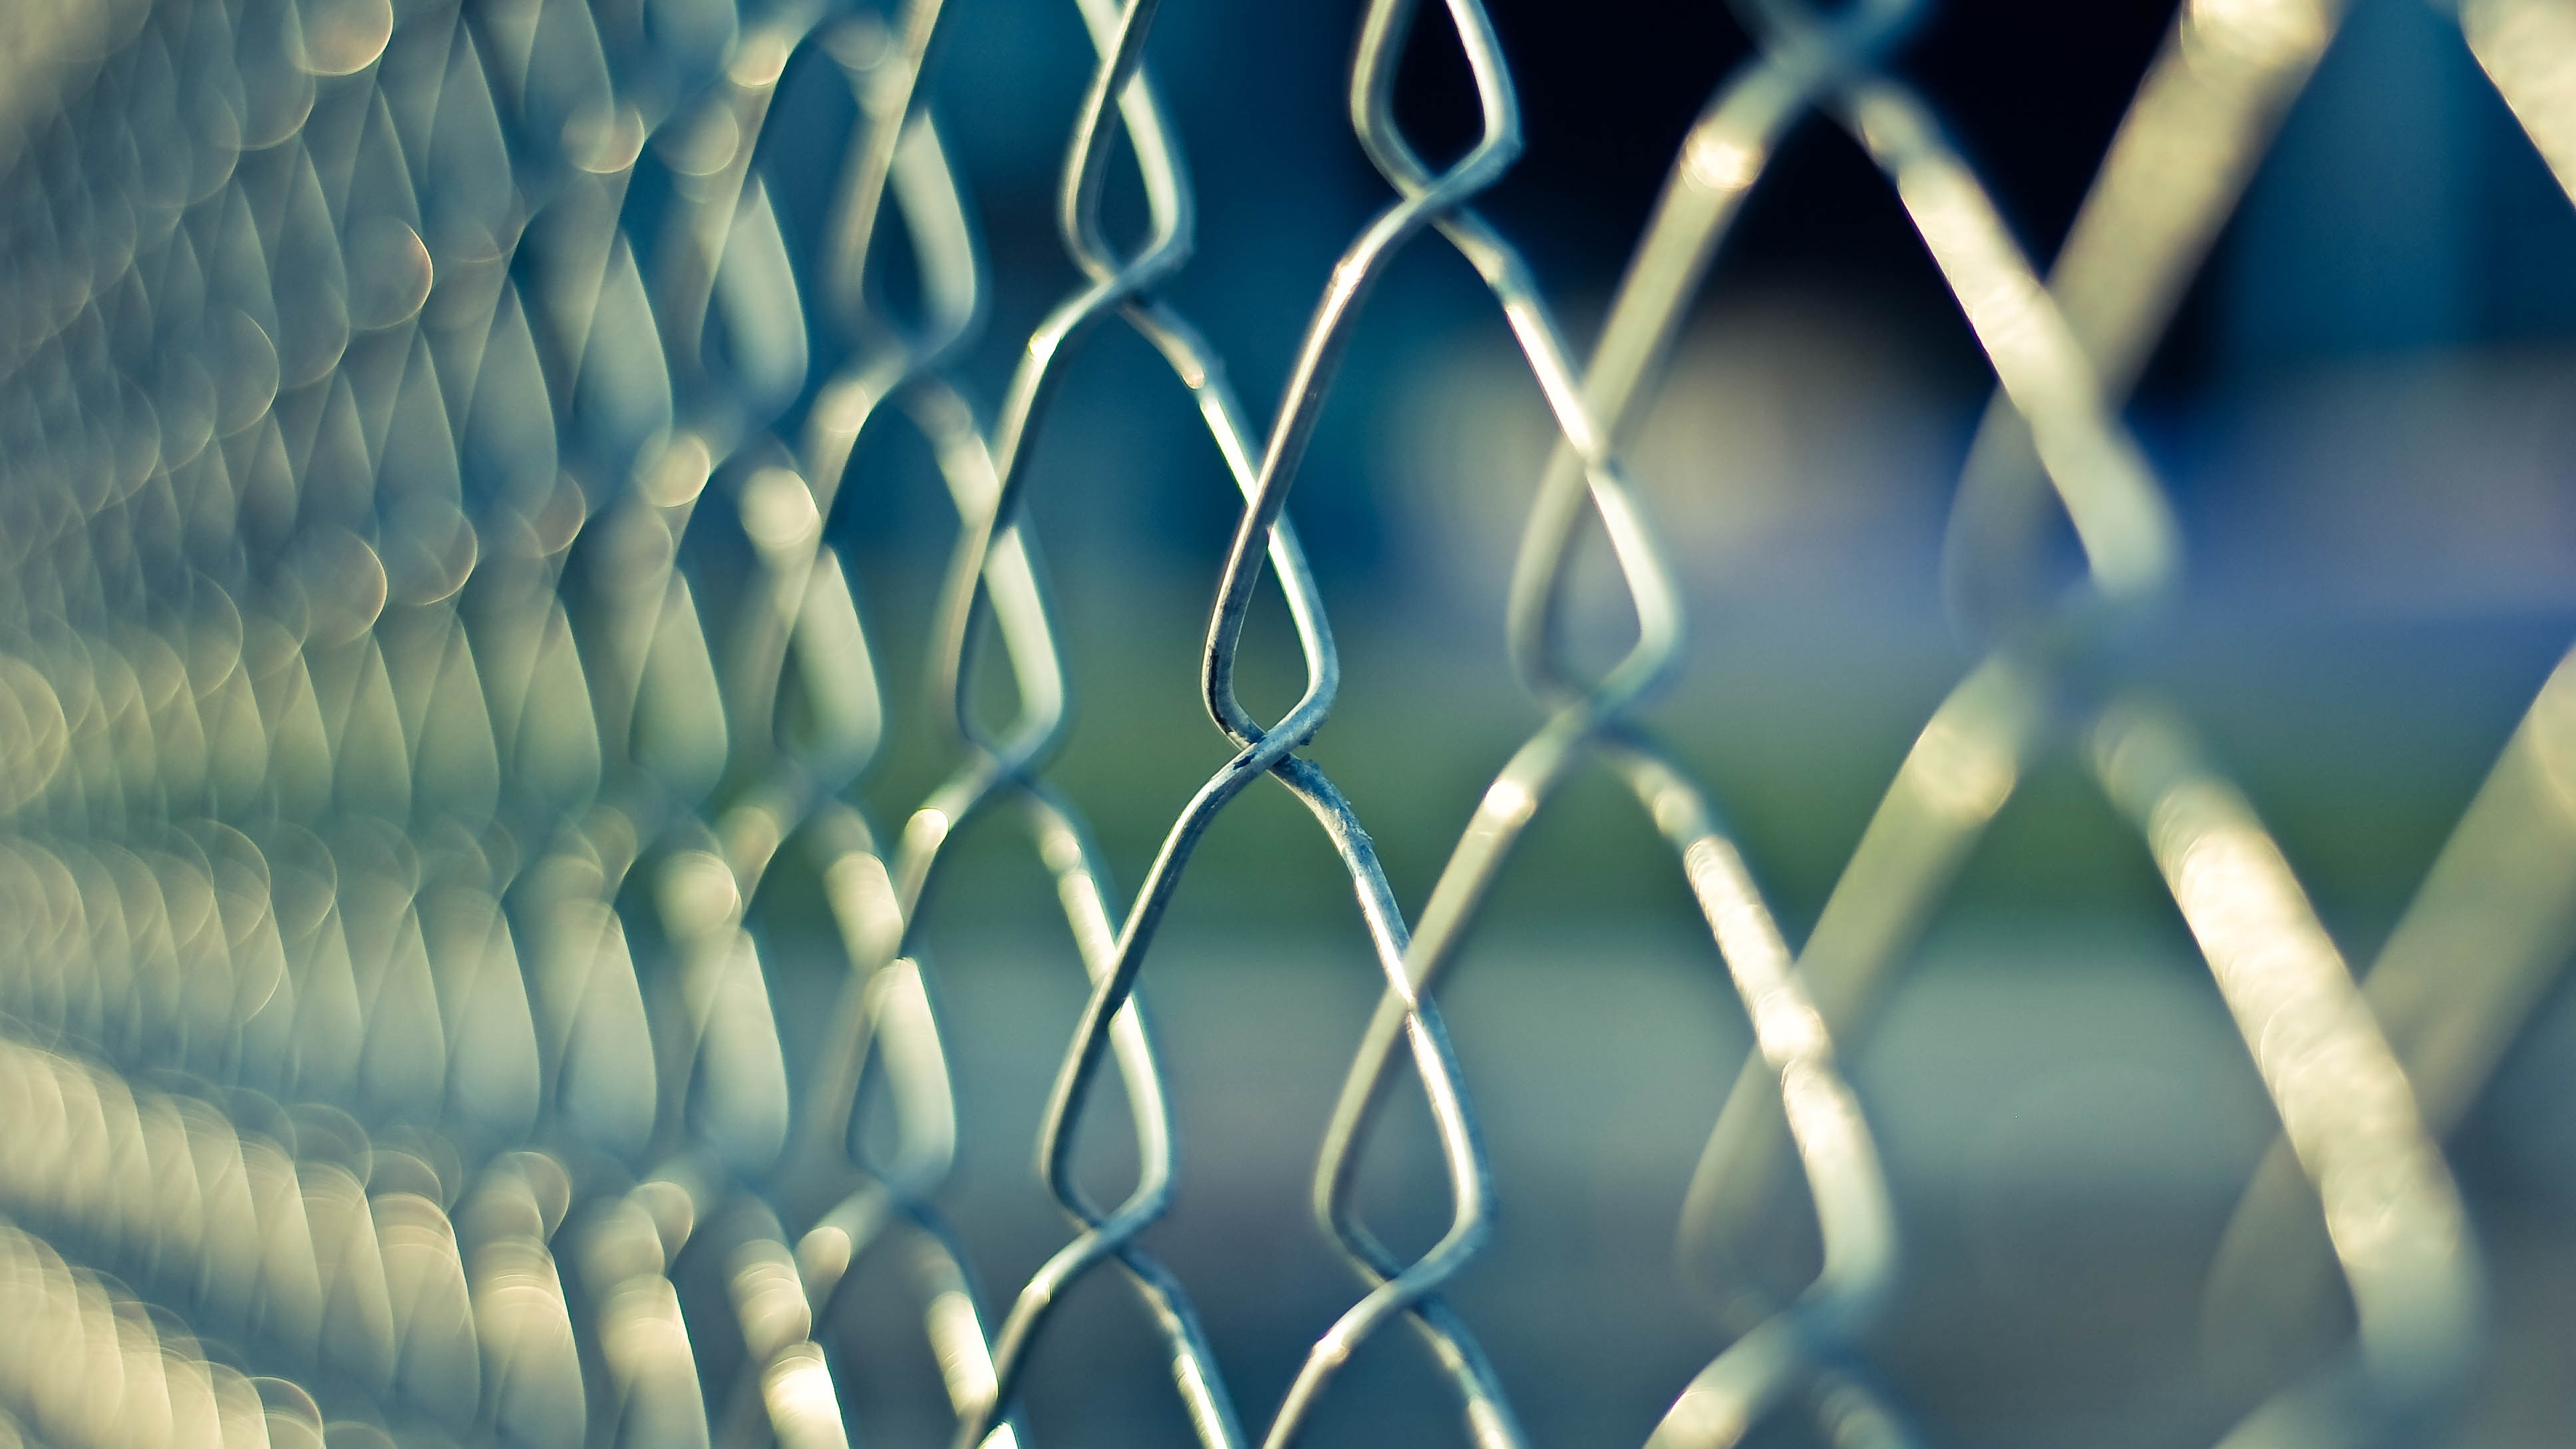 Texas is the state with the highest number of privately managed federal prisons that the Department of Justice will reduce and eventually eliminate.